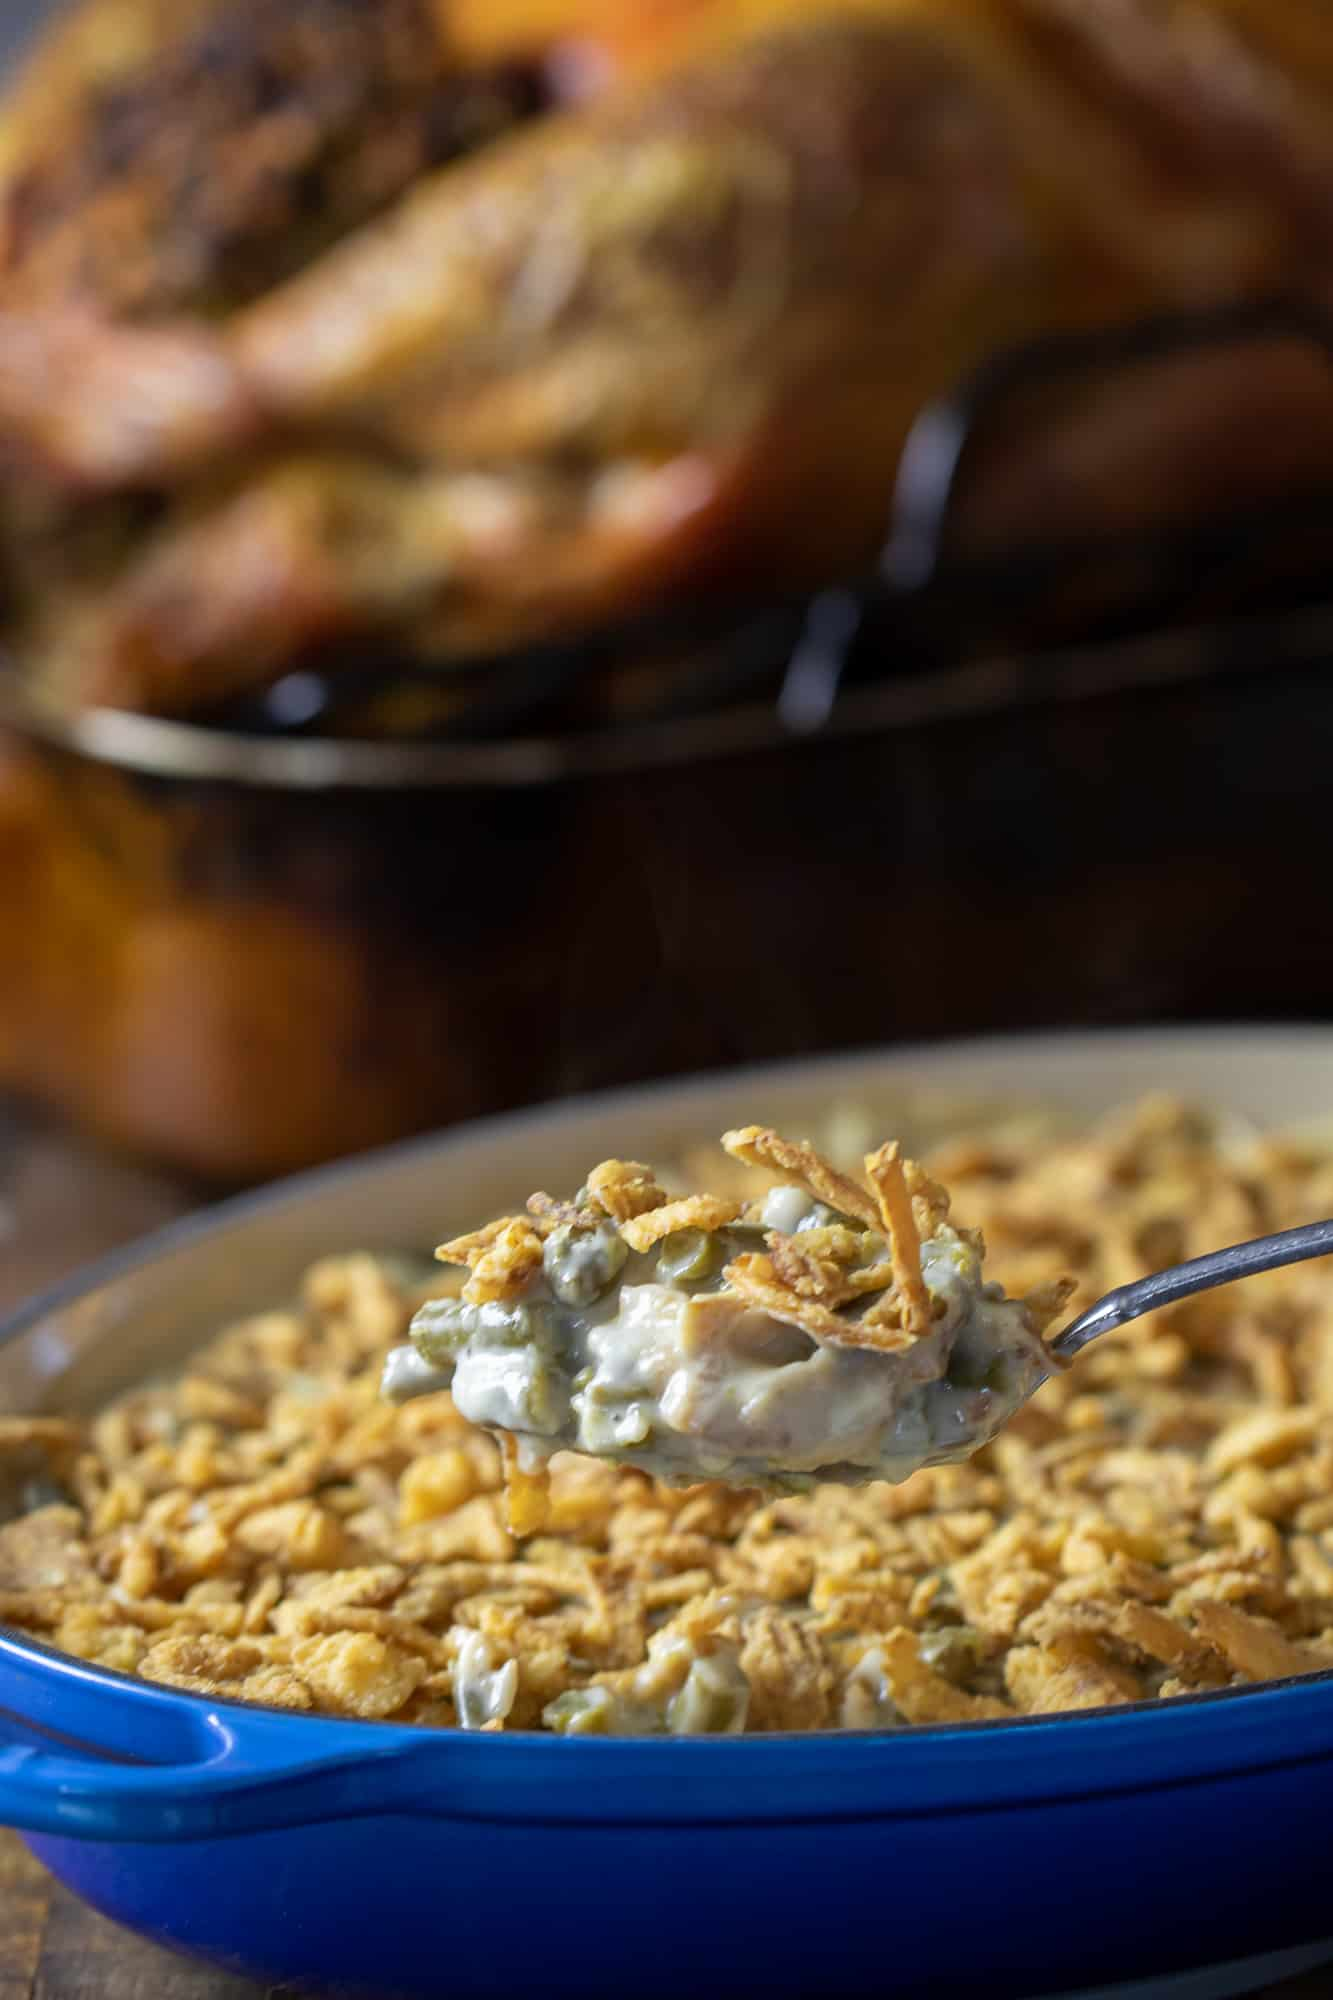 Traditional green bean casserole recipe made with cream of mushroom soup and crispy fried onions. The best holiday Thanksgiving side dish.